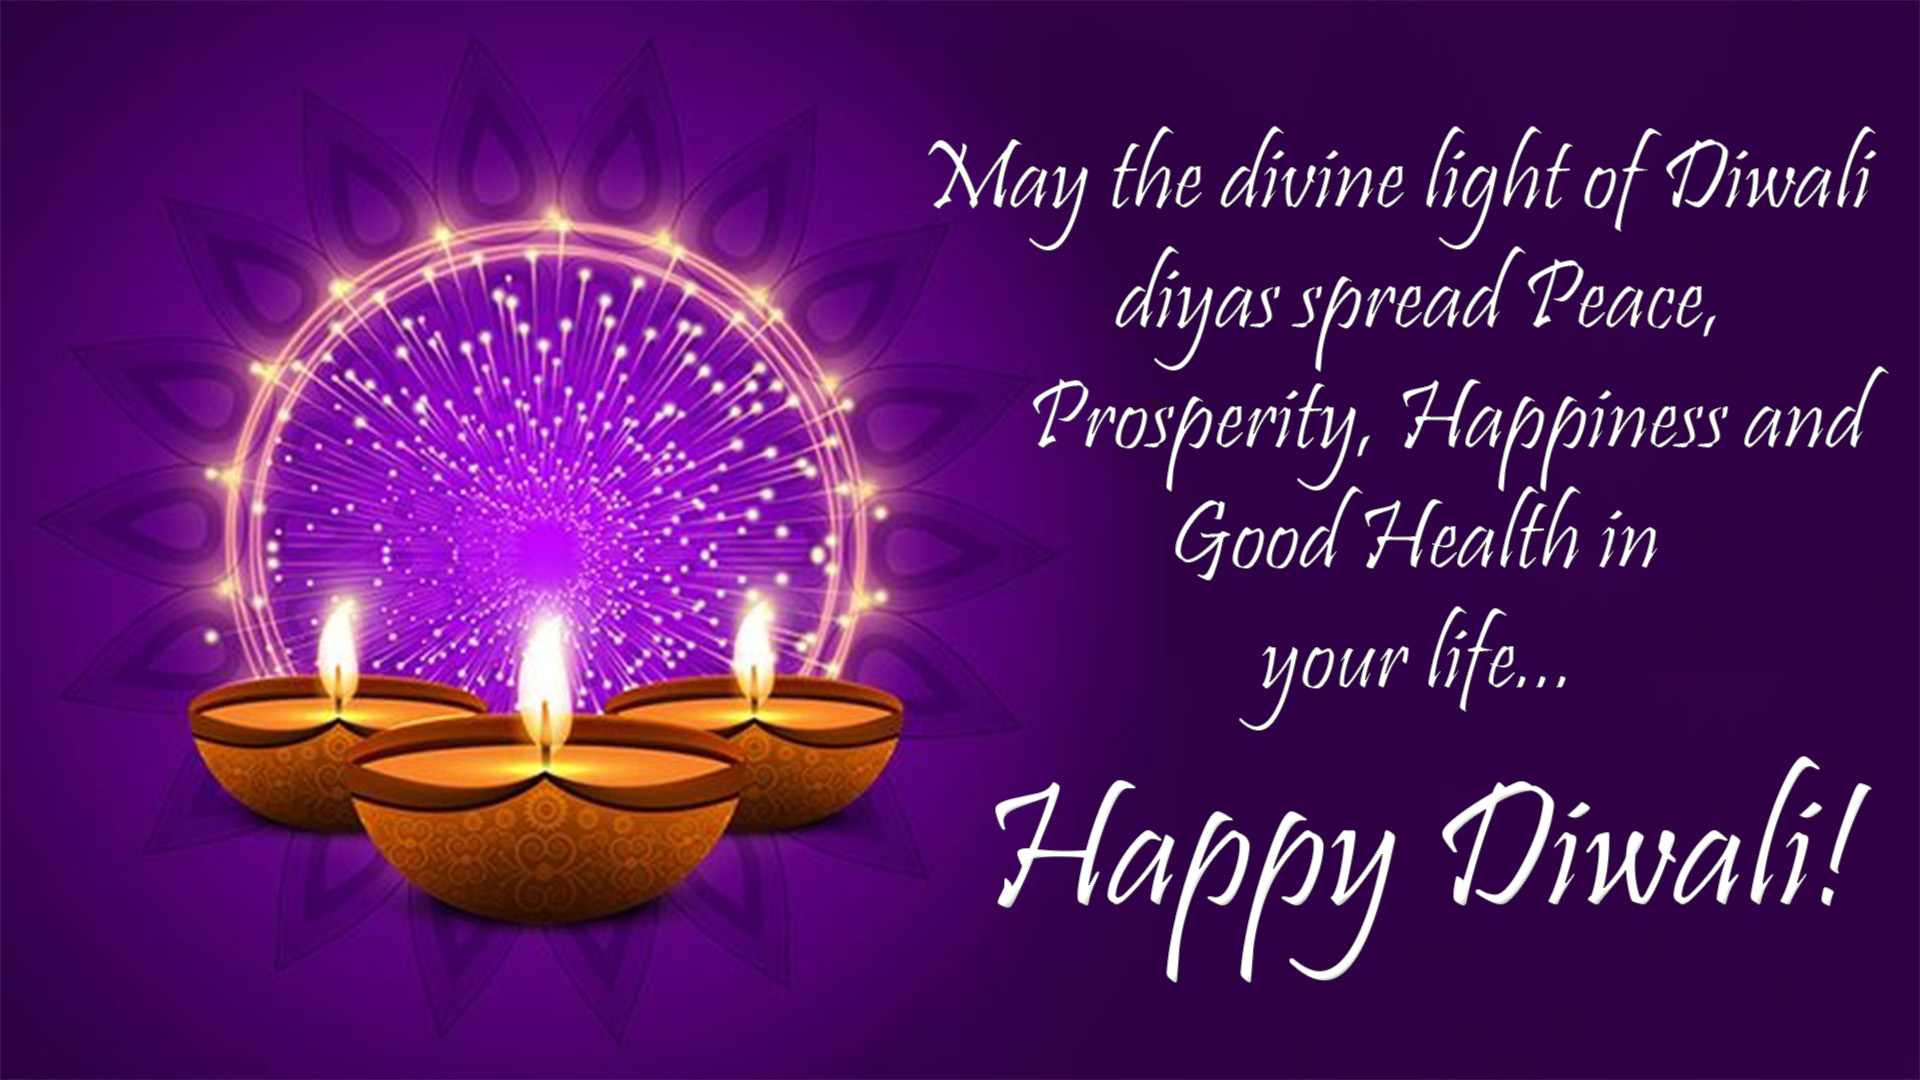 Happy diwali wishes greetings messages images deepavali wishes diwali card hd image m4hsunfo